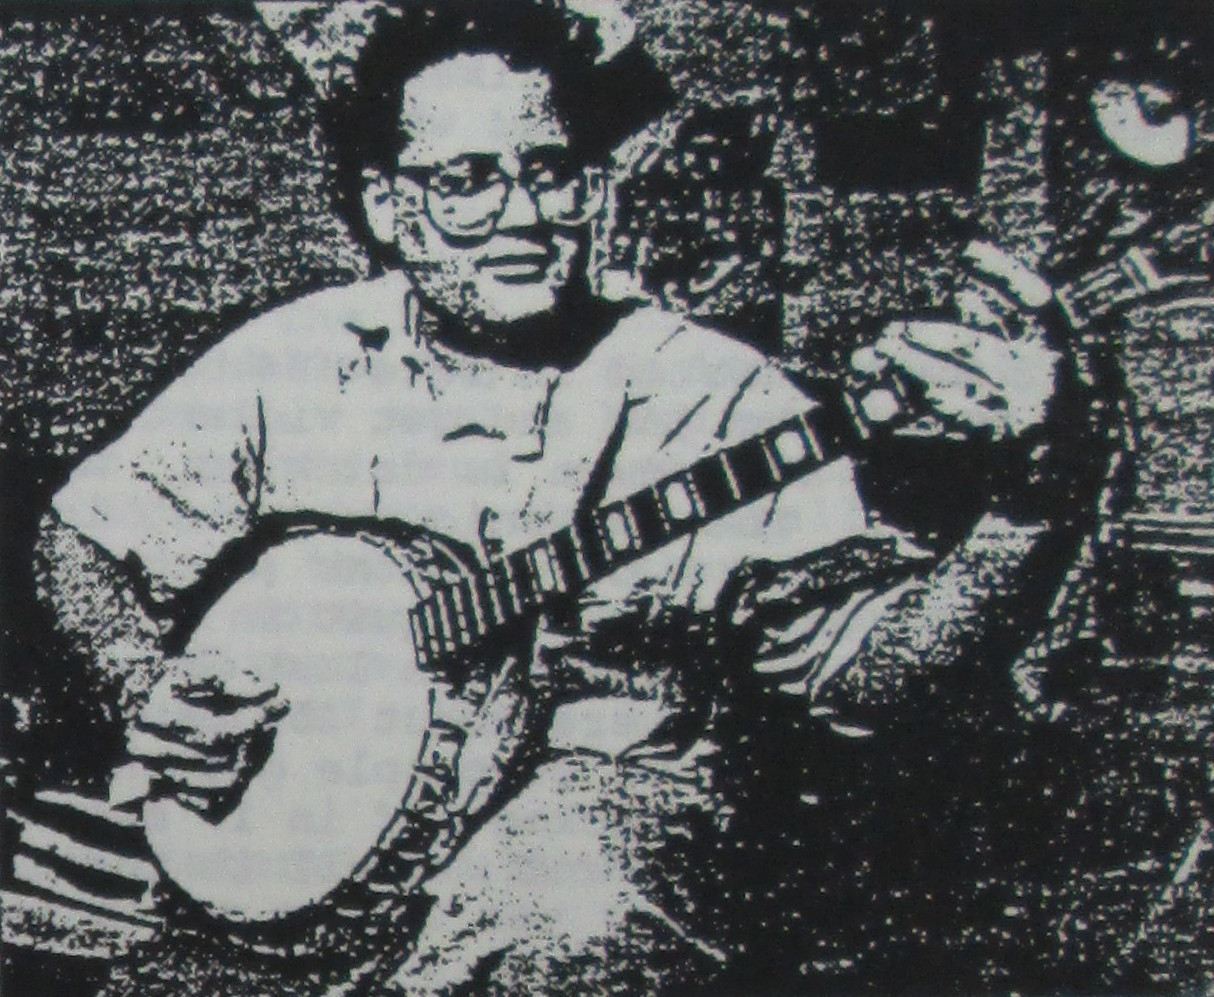 rouge s foam essay have you heard of eugene chadbourne guitarist dr eugene chadbourne and that his doesn t come up a lot more often both today and in histories of independent pop music